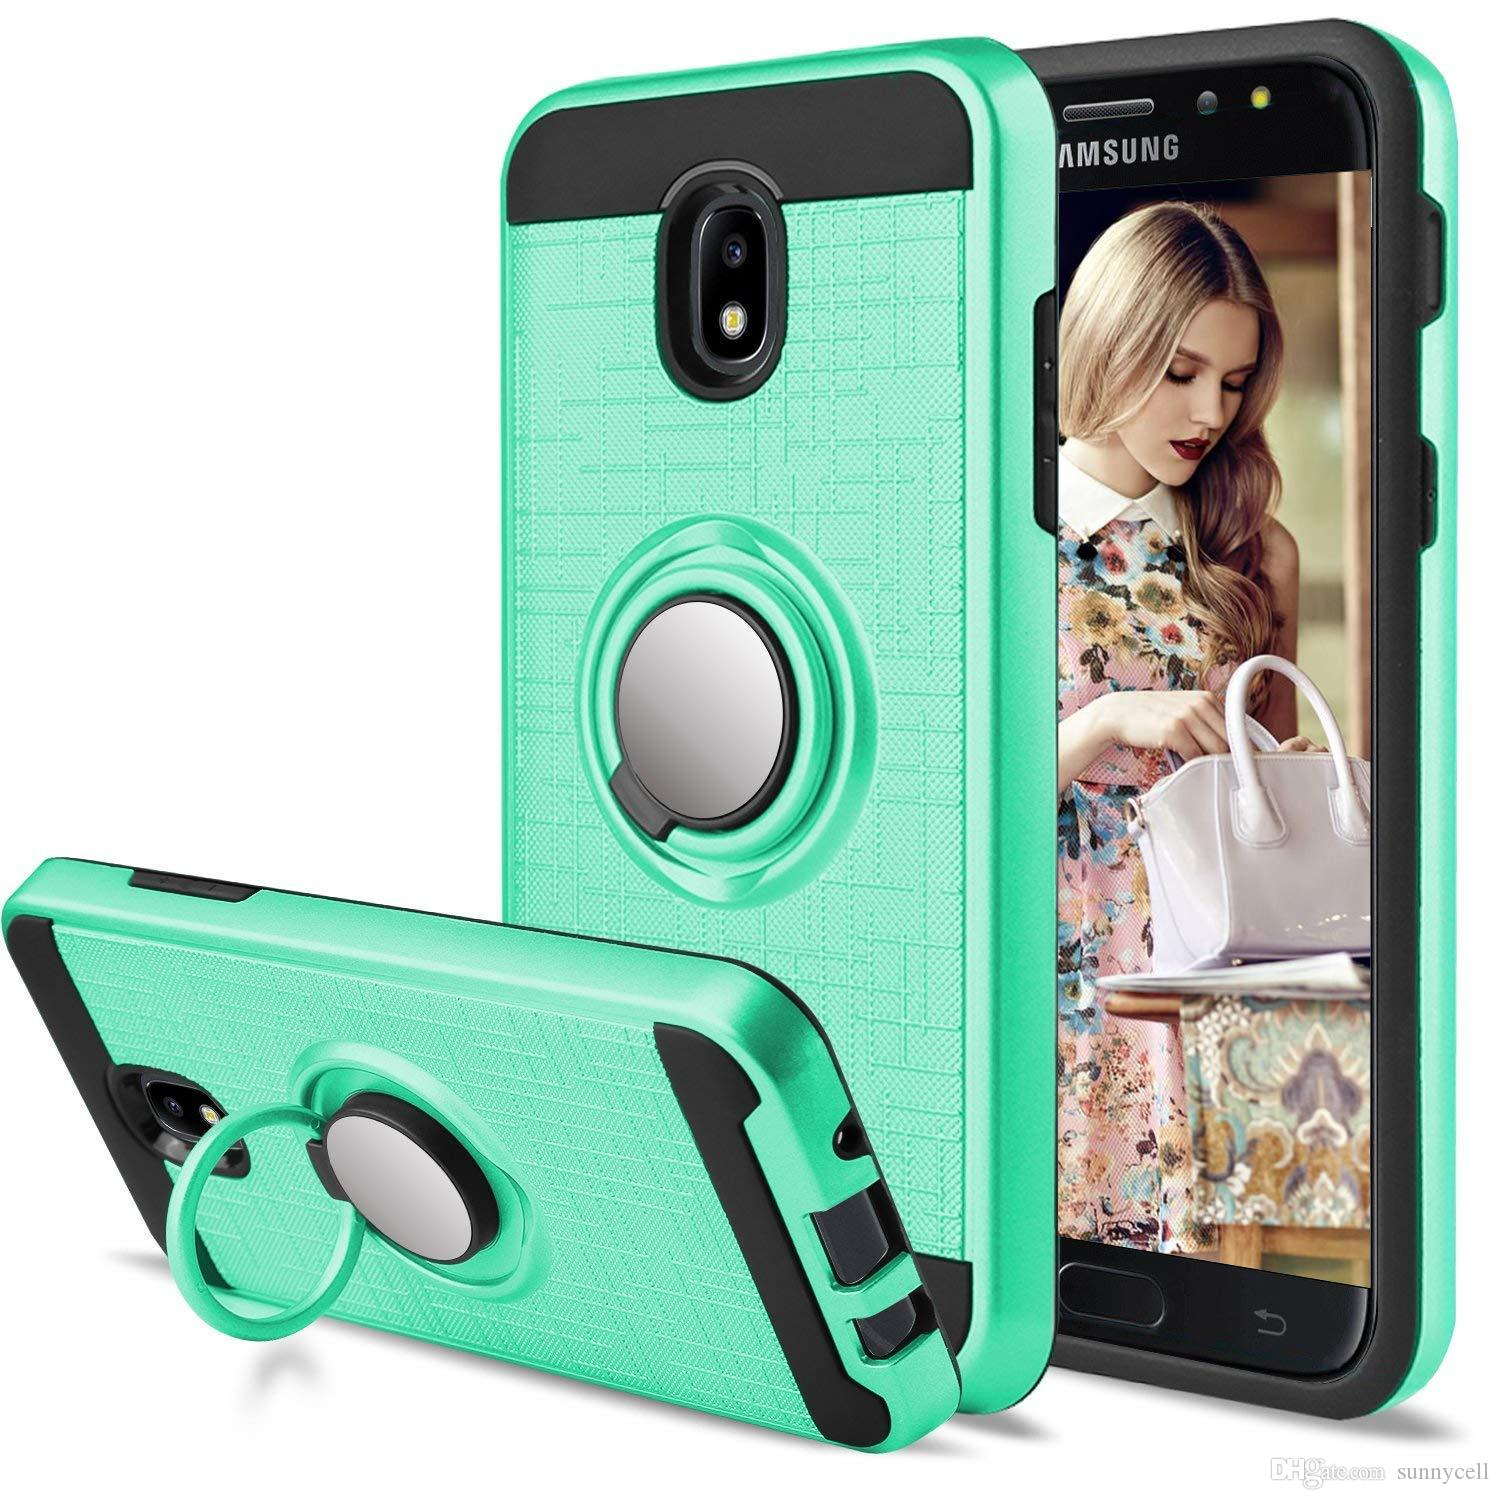 For Samsung J3 2018 J7 J337 J737 Galaxy Amp Prime 3 PRIME J3 Emerge 360  Stand & Dual Layer Resistant Magnetic Back Cover Phones Cases Silicone  Phone